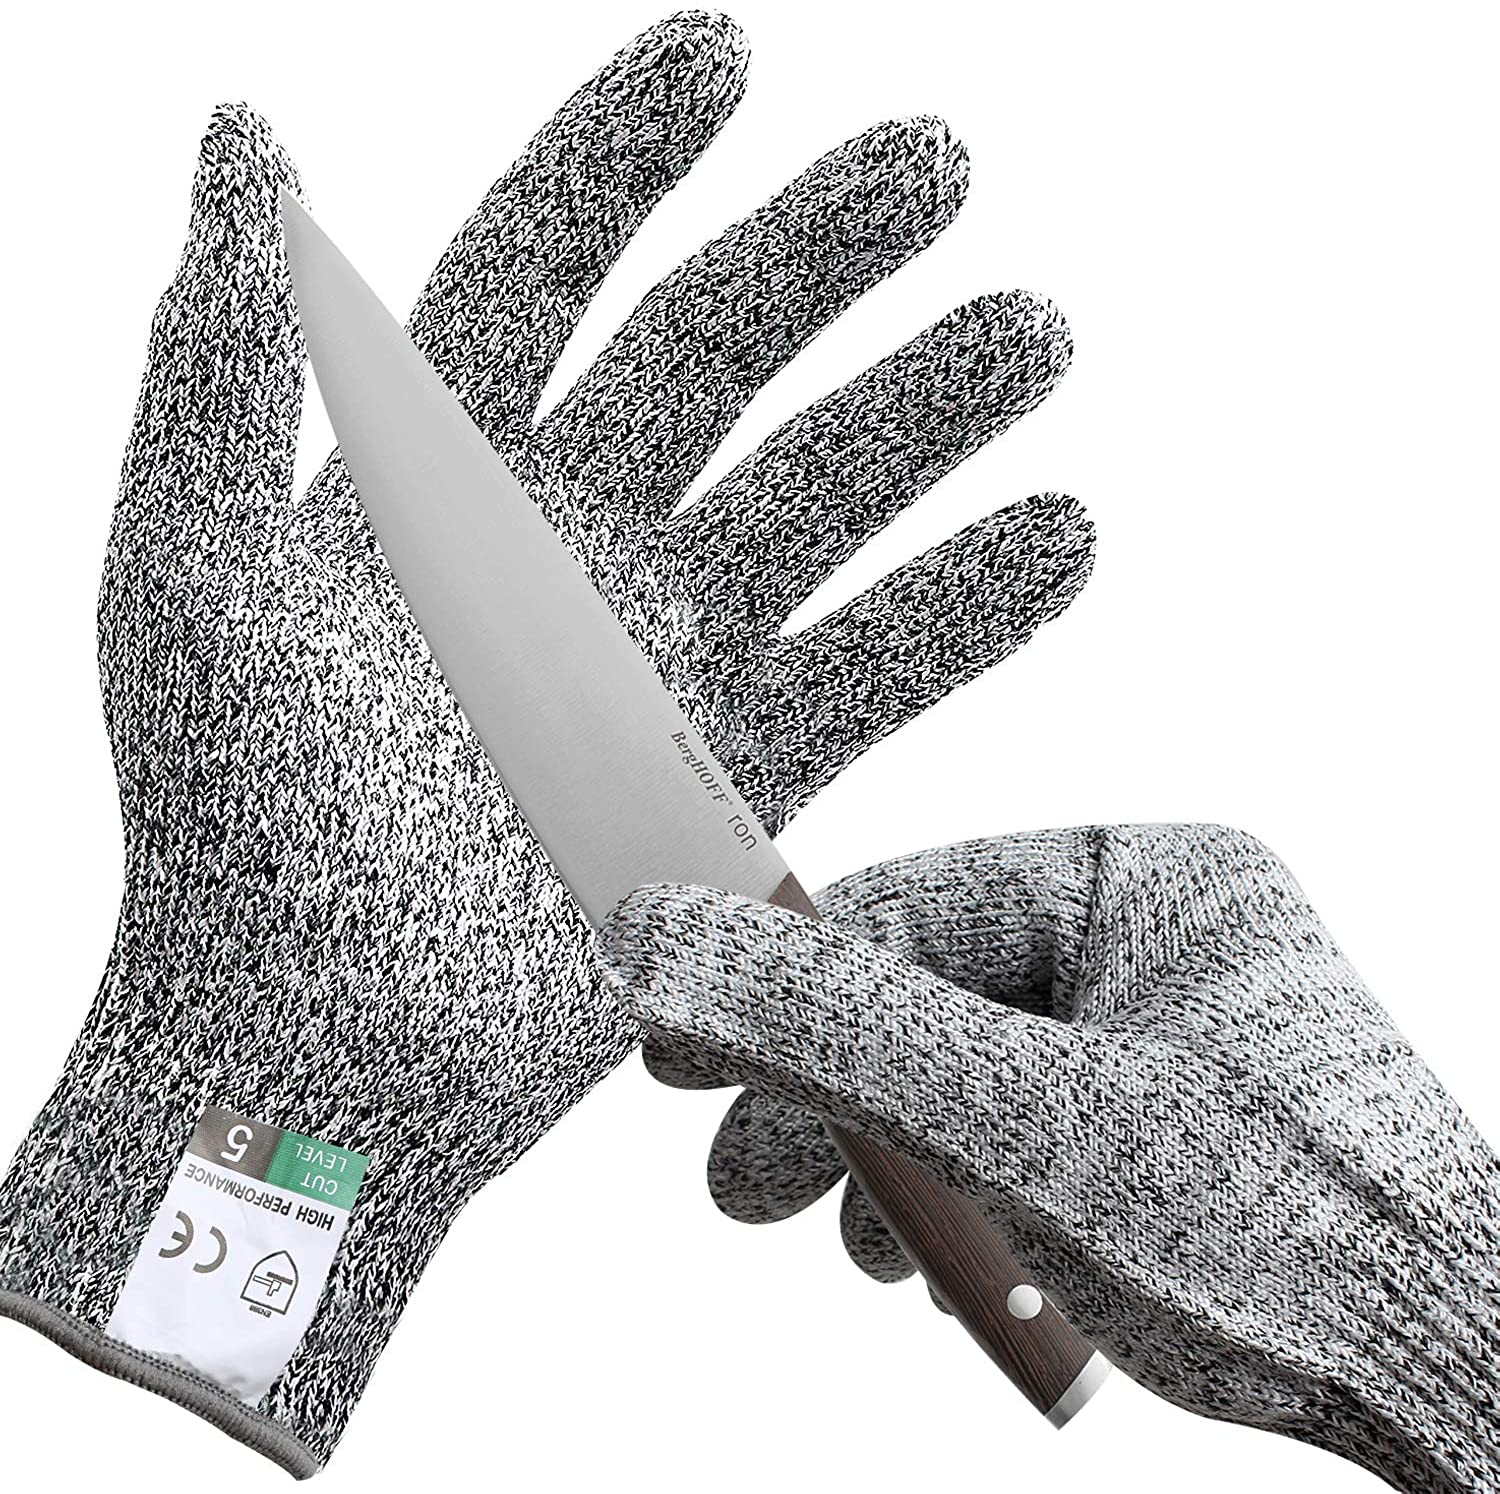 SZOCOOL Cut Resistant Gloves (1 Pair) Food Grade Level 5 Protection, Safety Cutting Gloves for kitchen, woodworkinMg, carving, carpentry, oyster shucking(L)